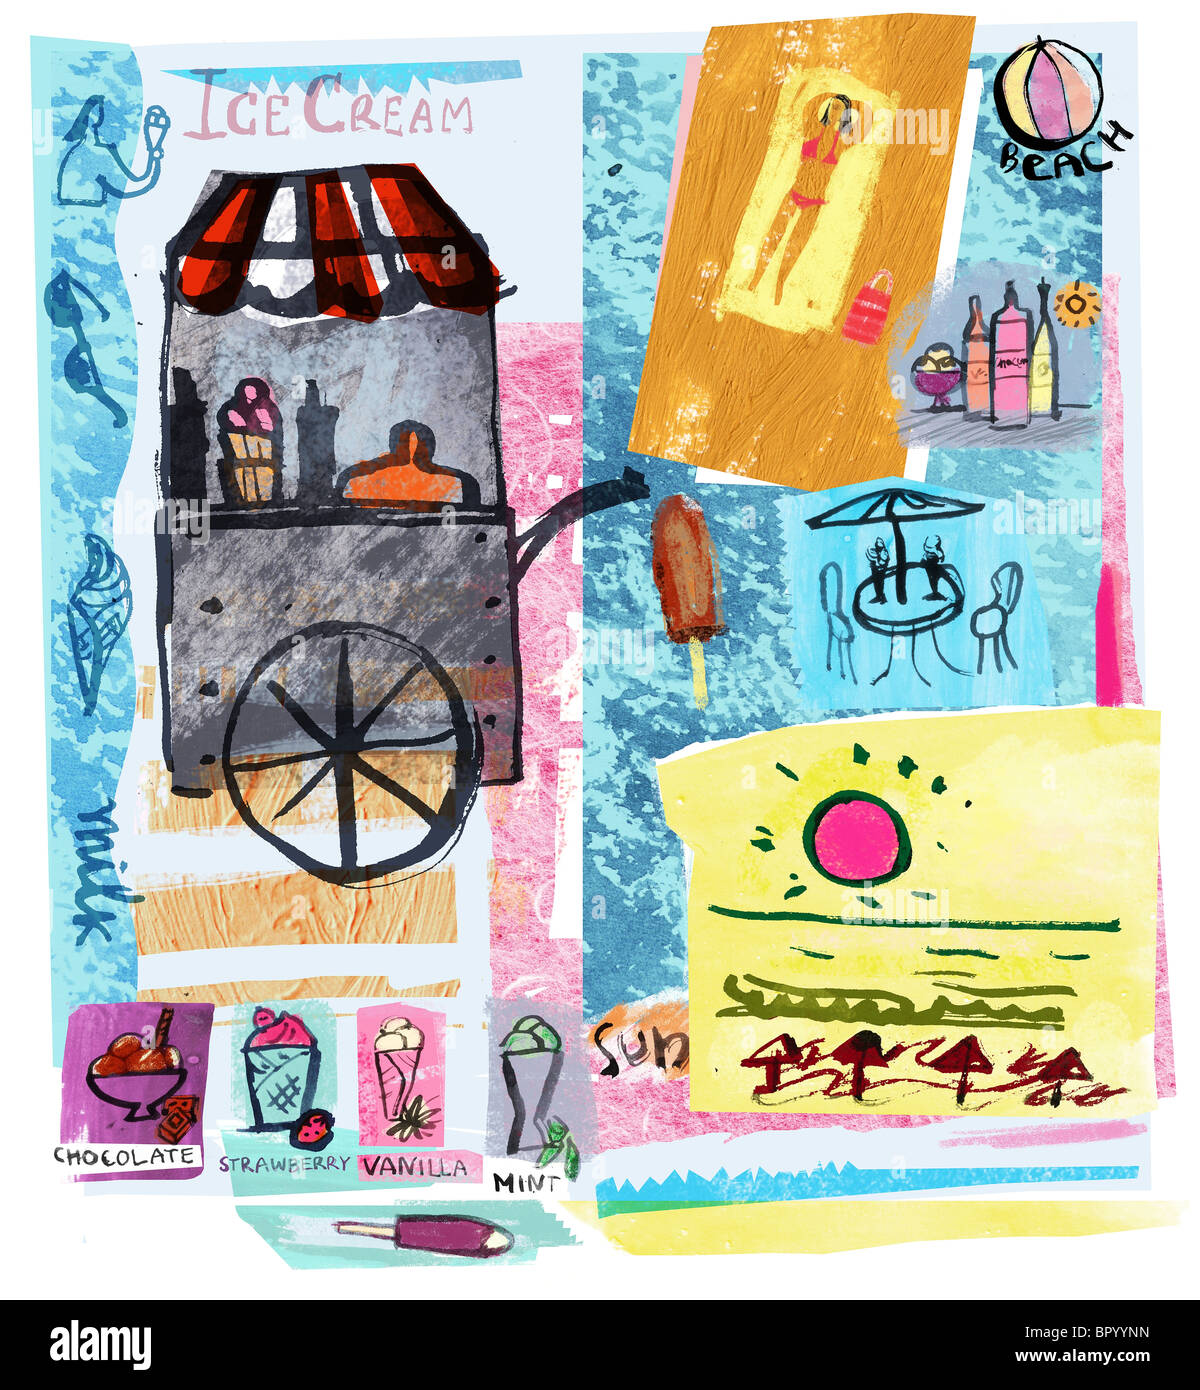 Collage of ice-cream cart, sun and beach, illustrating summer - Stock Image